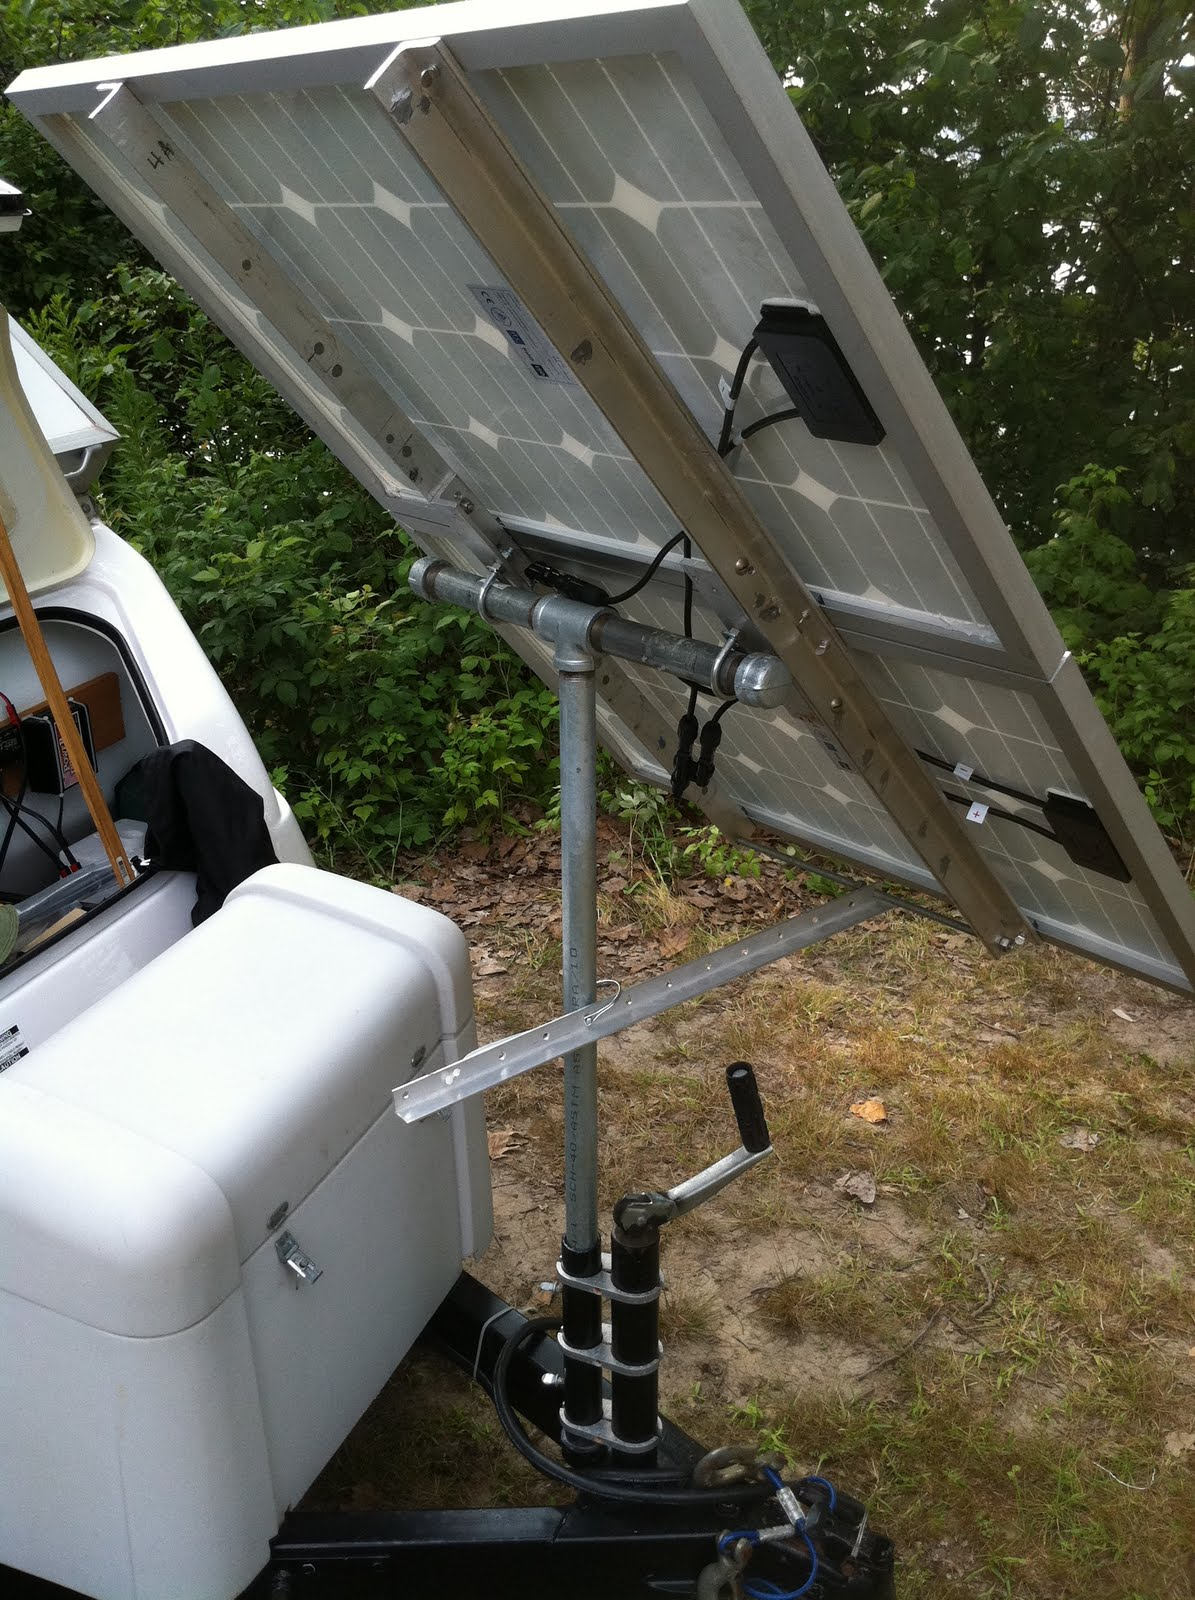 Retrac S Aliner And Camping Adventures Upgraded Solar System